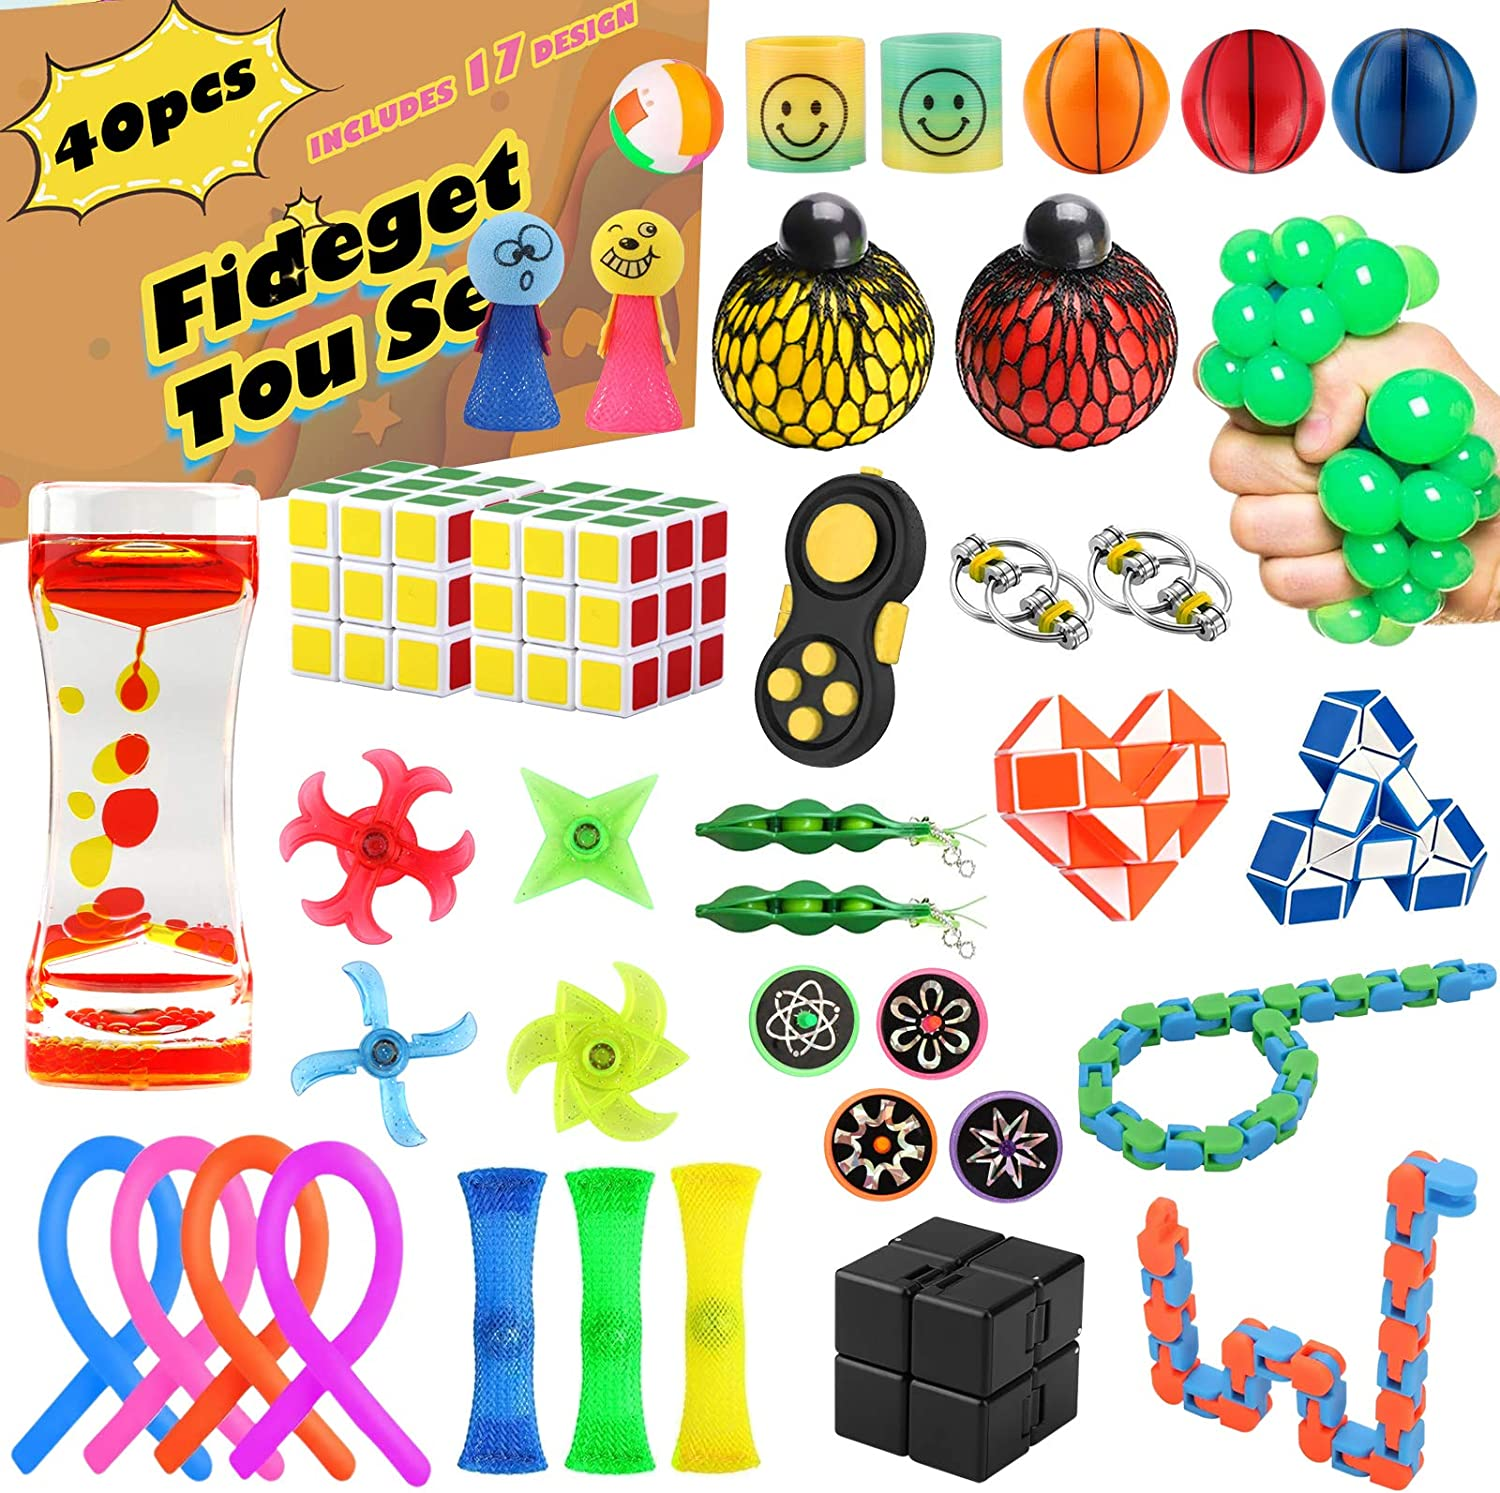 OYRGCIK 40 Pack Sensory Fidget Toys Set, Stress Relief and Anti-Anxiety Tools Bundle for Kids Adults, Hand Toys for Birthday Party Favors, Pinata Fillers, Classroom Rewards, Treasure Box Prizes